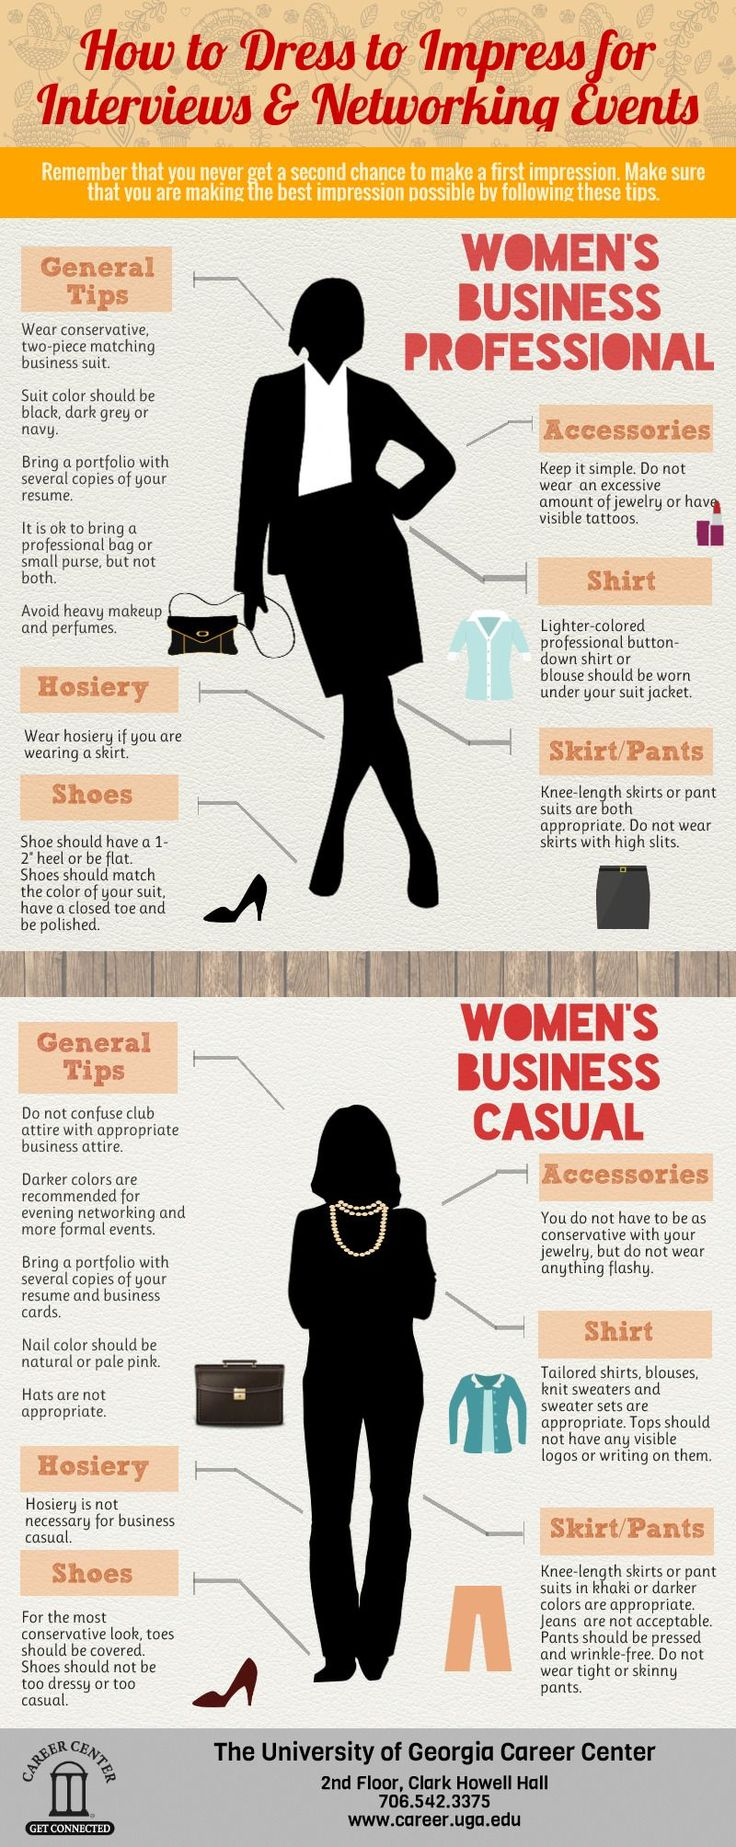 Dress Professionally For Career Fairs.  How To Dress To Impress For  Interviews And Networking Events